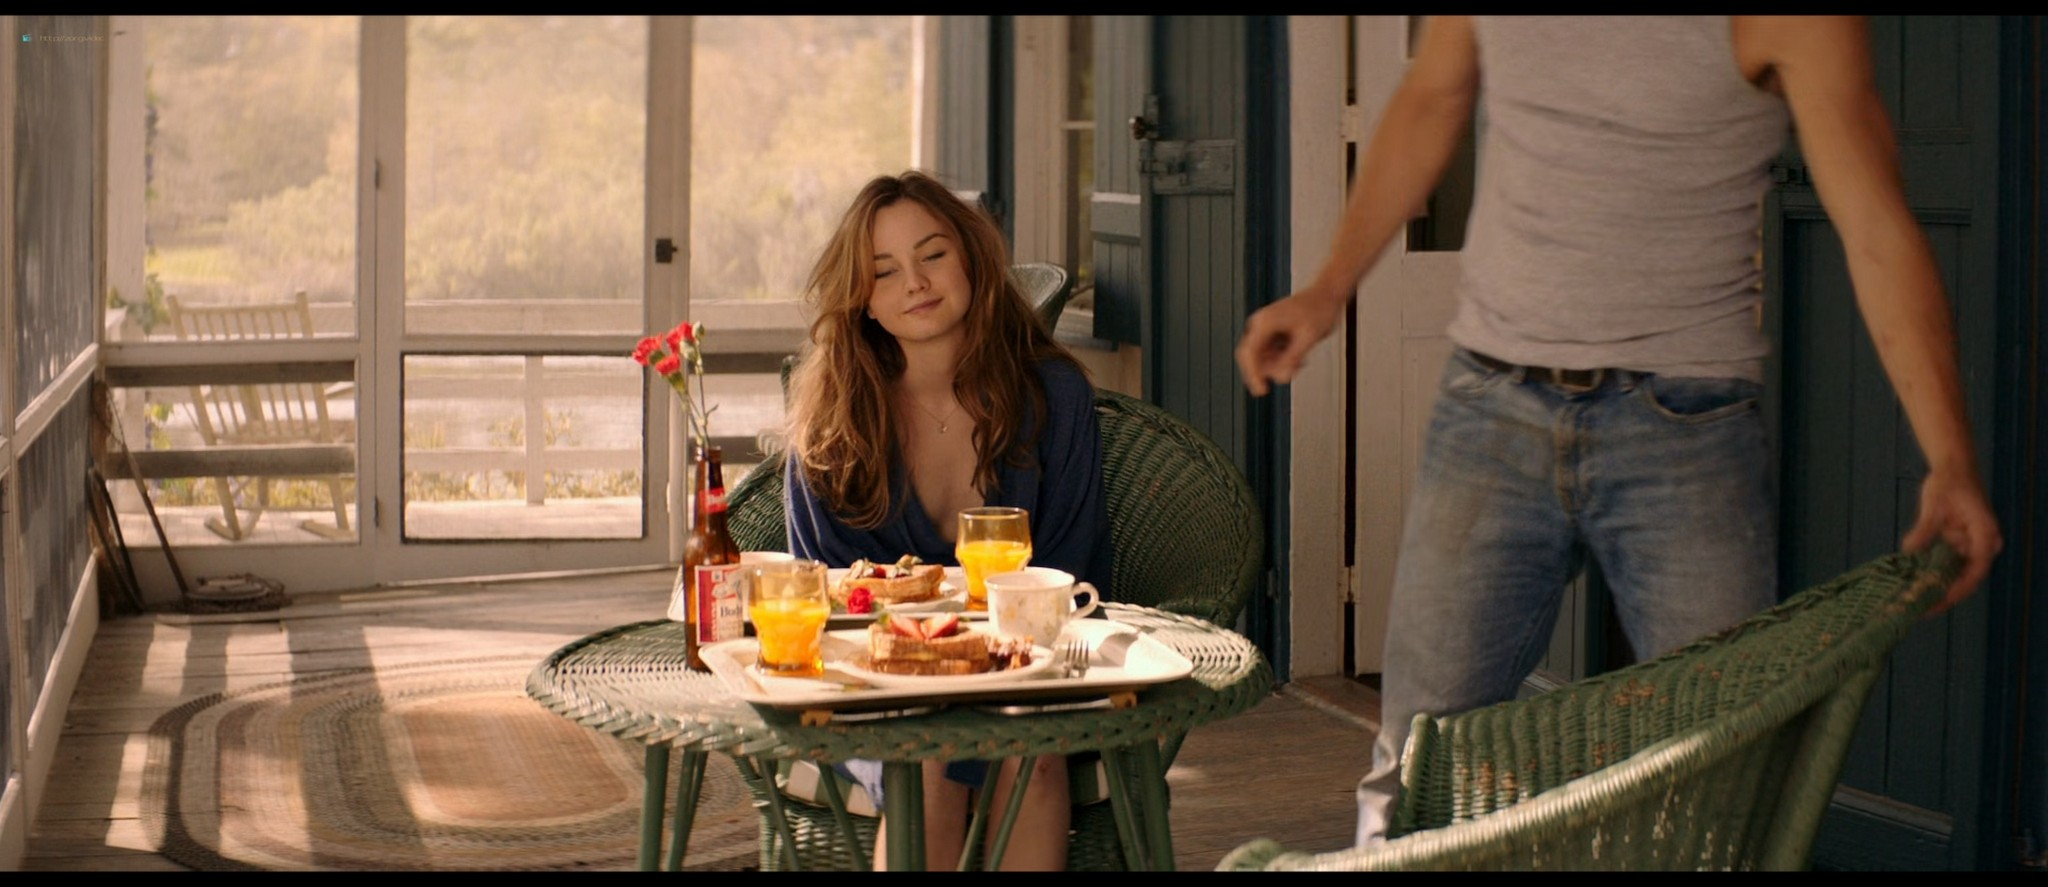 Michelle Monaghan hot see-through and Liana Liberato hot mild sex - The Best of Me (2014) HD 1080p BluRay (8)